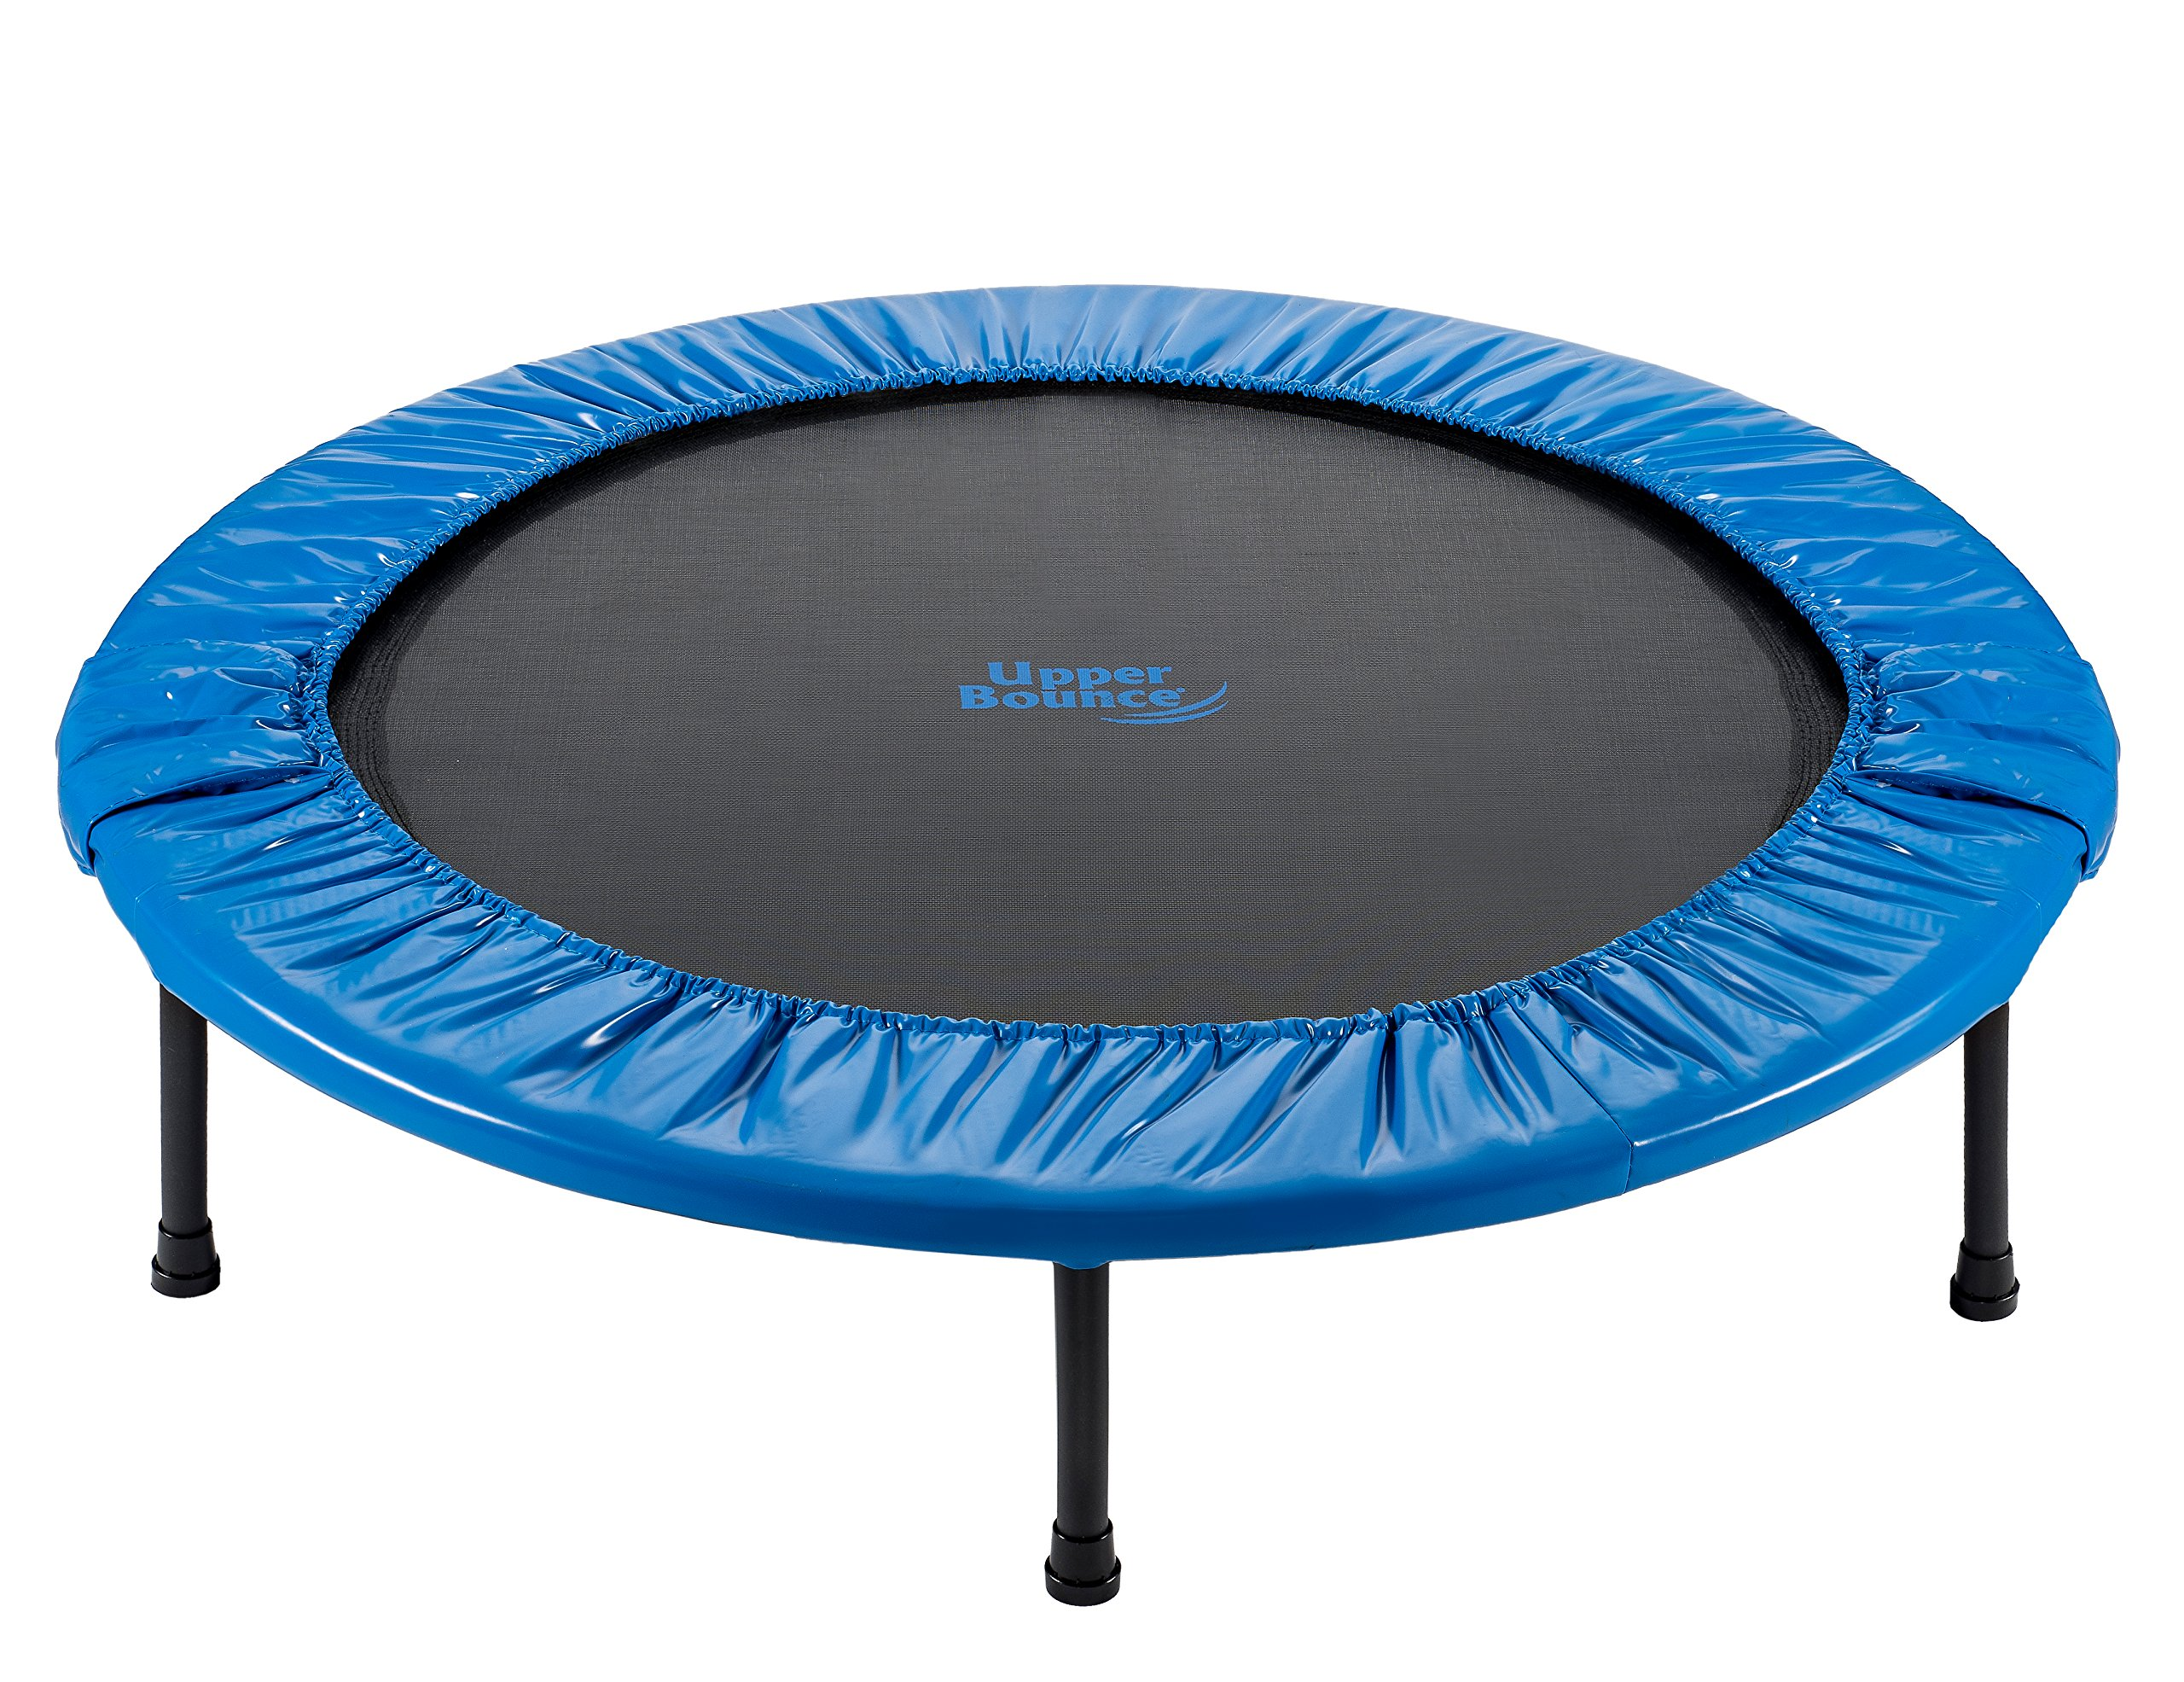 44'' Mini Foldable Rebounder Fitness Trampoline by Upper Bounce